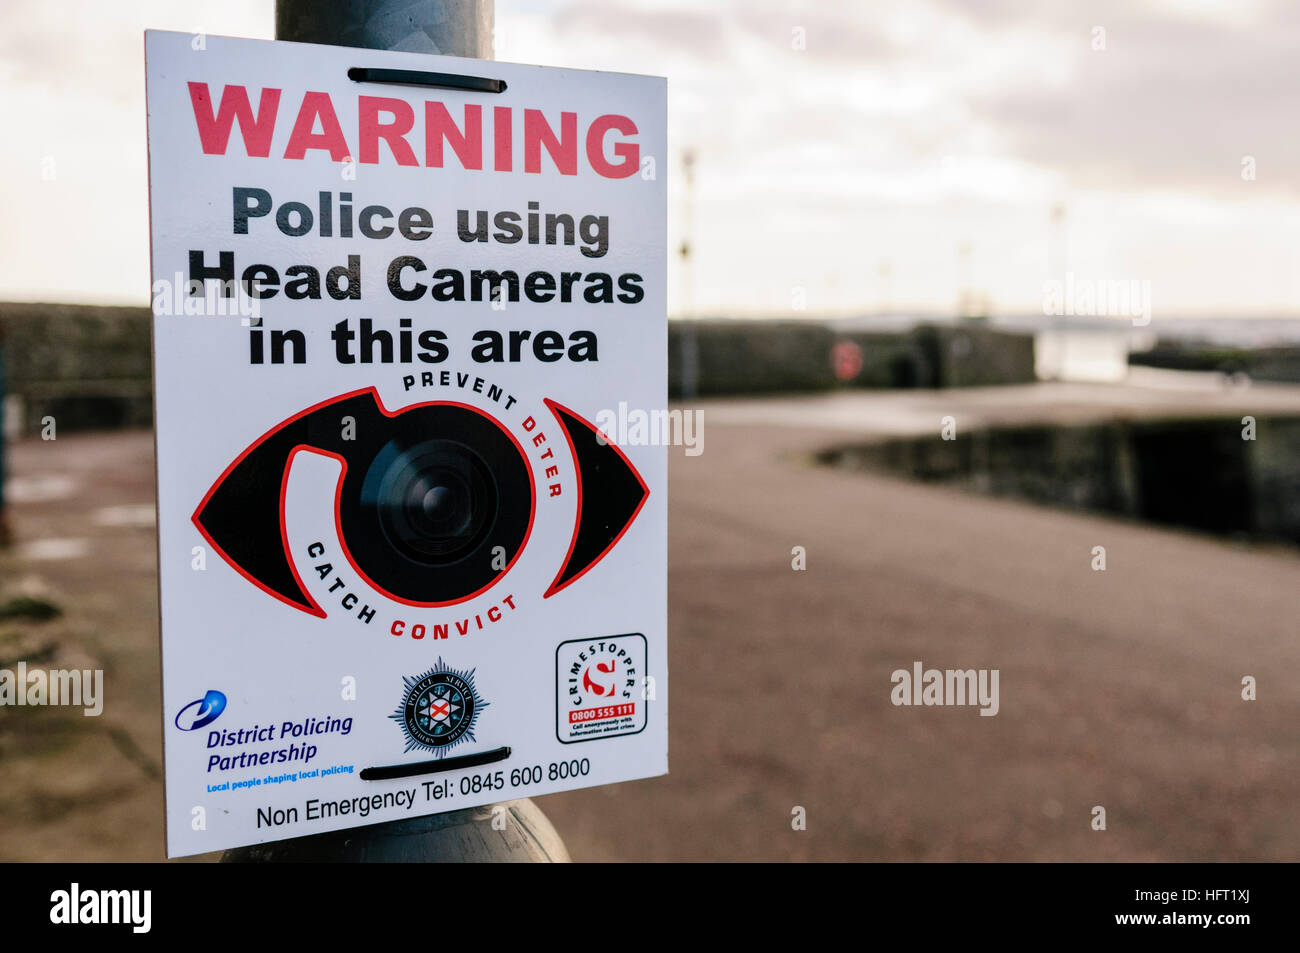 Sign warning the public that police are using Head Cameras in thie area - Stock Image